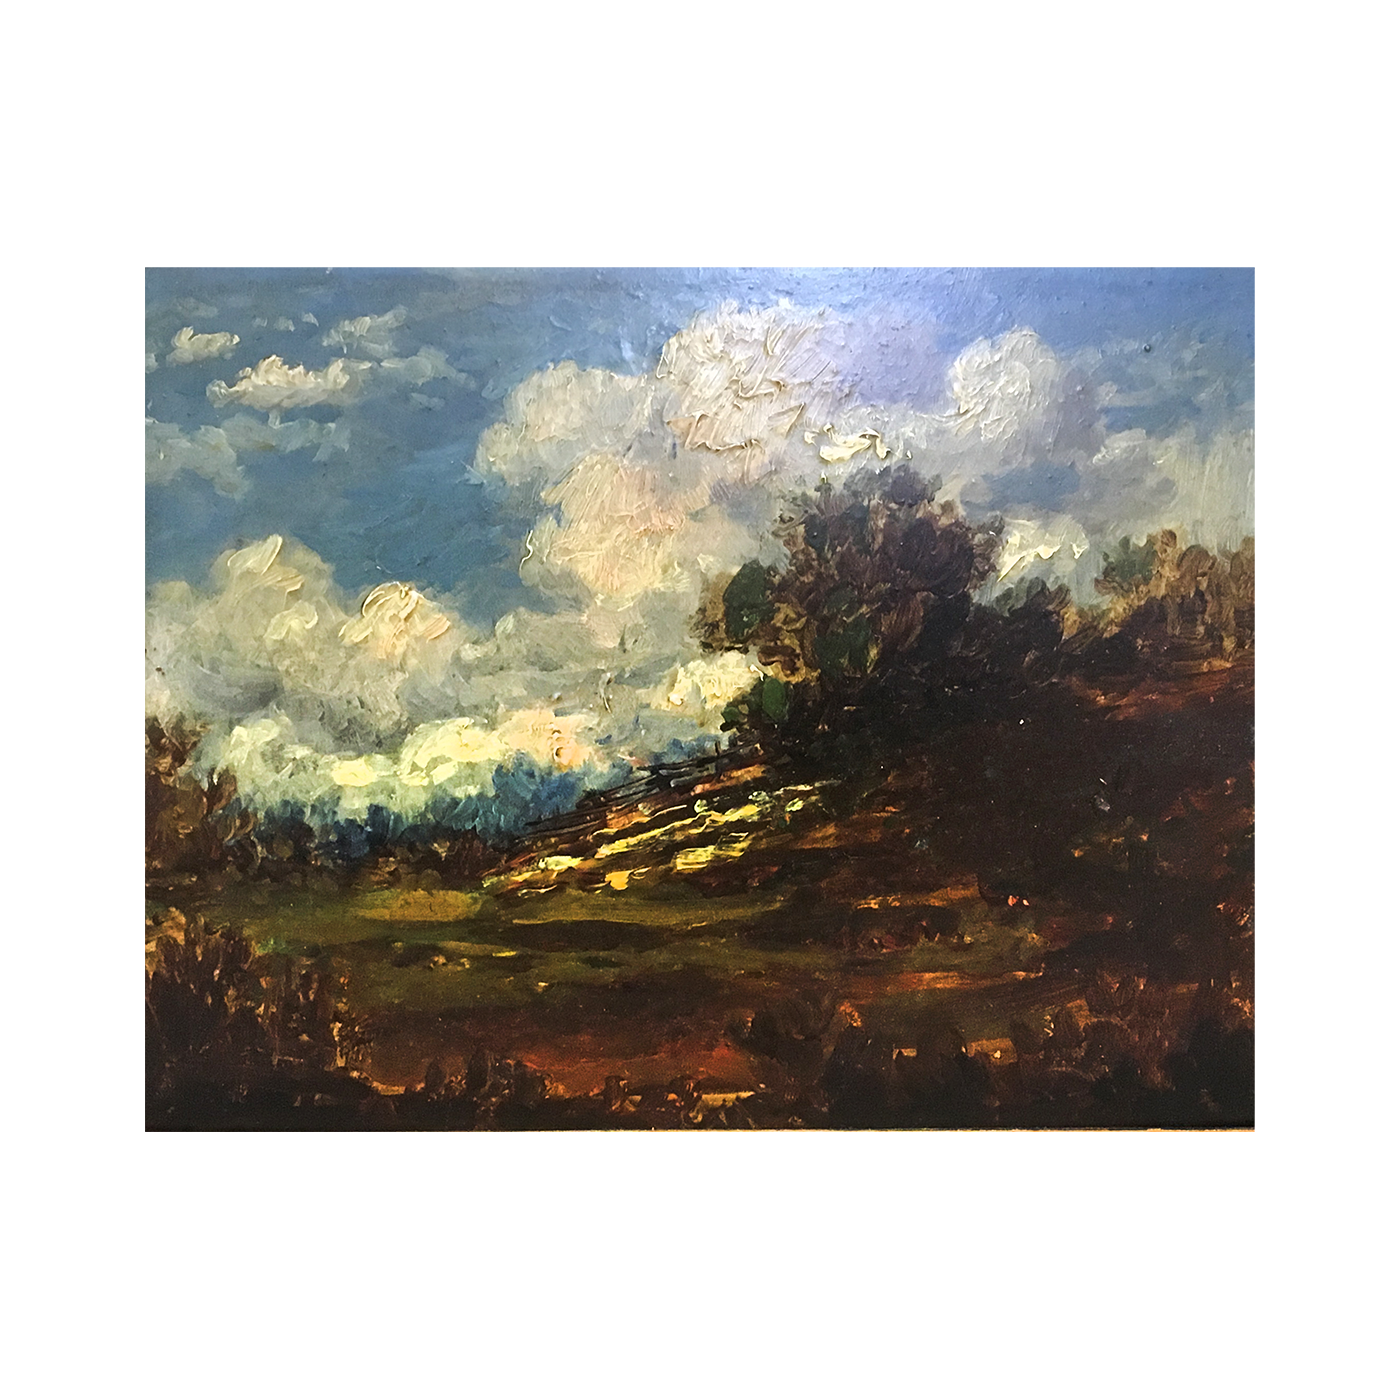 William Ladd Taylor [1854-1926] American Barbizon school : Cloud study, circa 1880.